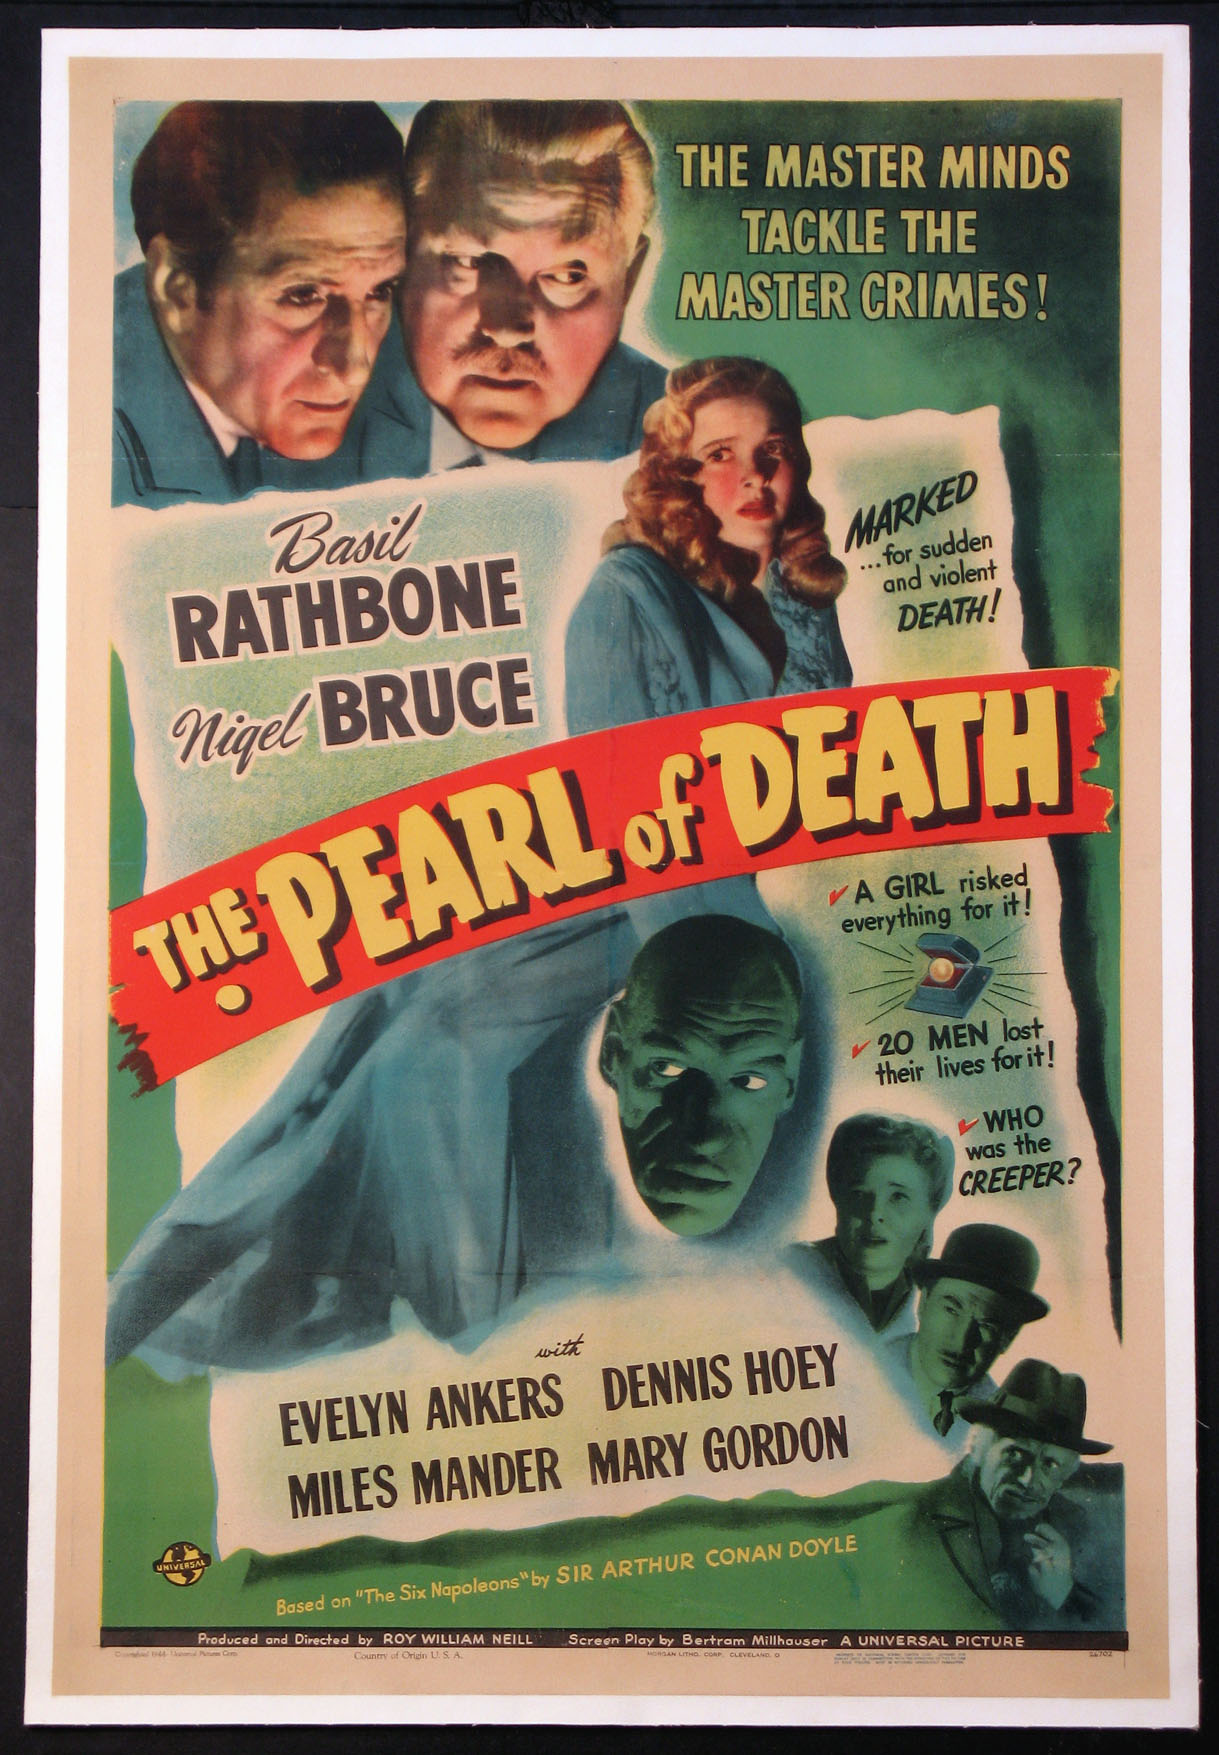 PEARL OF DEATH (Sherlock Holmes series) @ FilmPosters.com